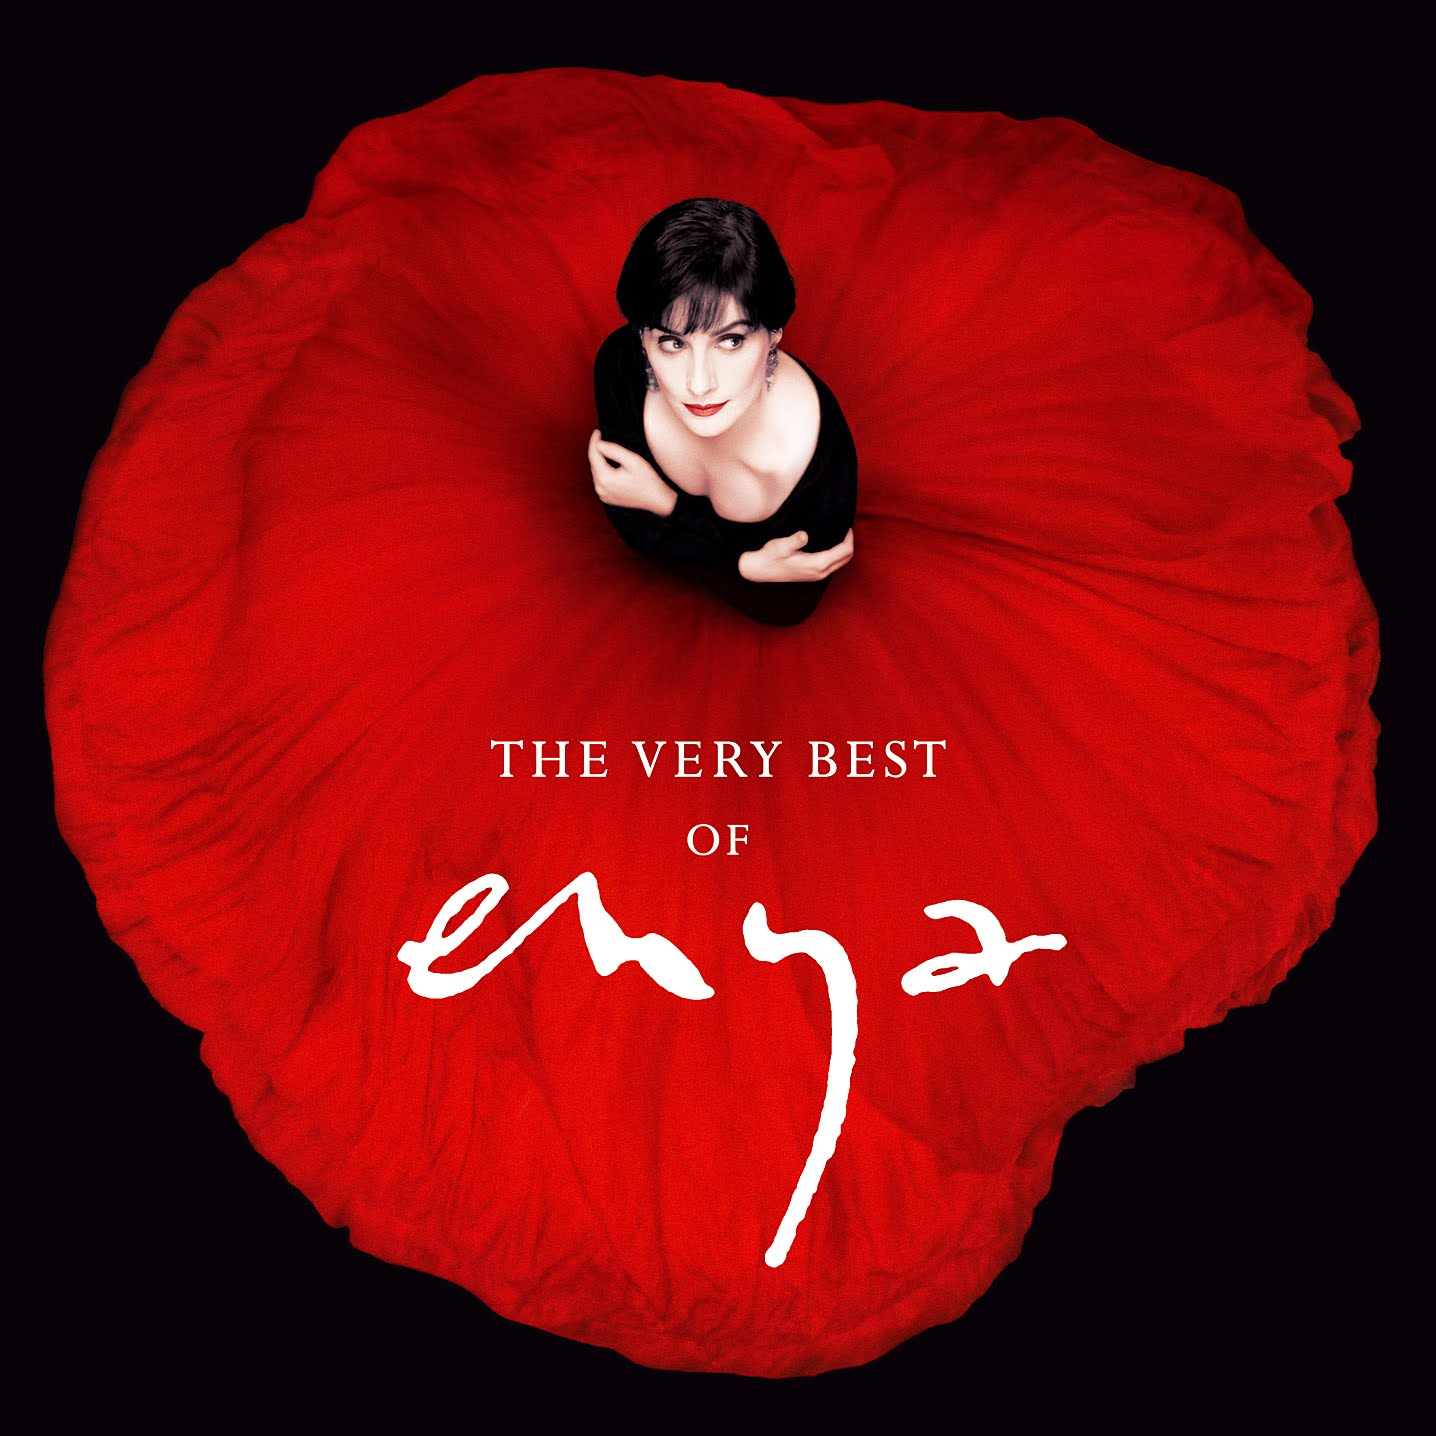 http://2.bp.blogspot.com/_jF_V76tZOwE/SwyIiv6961I/AAAAAAAAAAw/i005lVKR6bE/s1600/the-very-best-of-enya.jpg